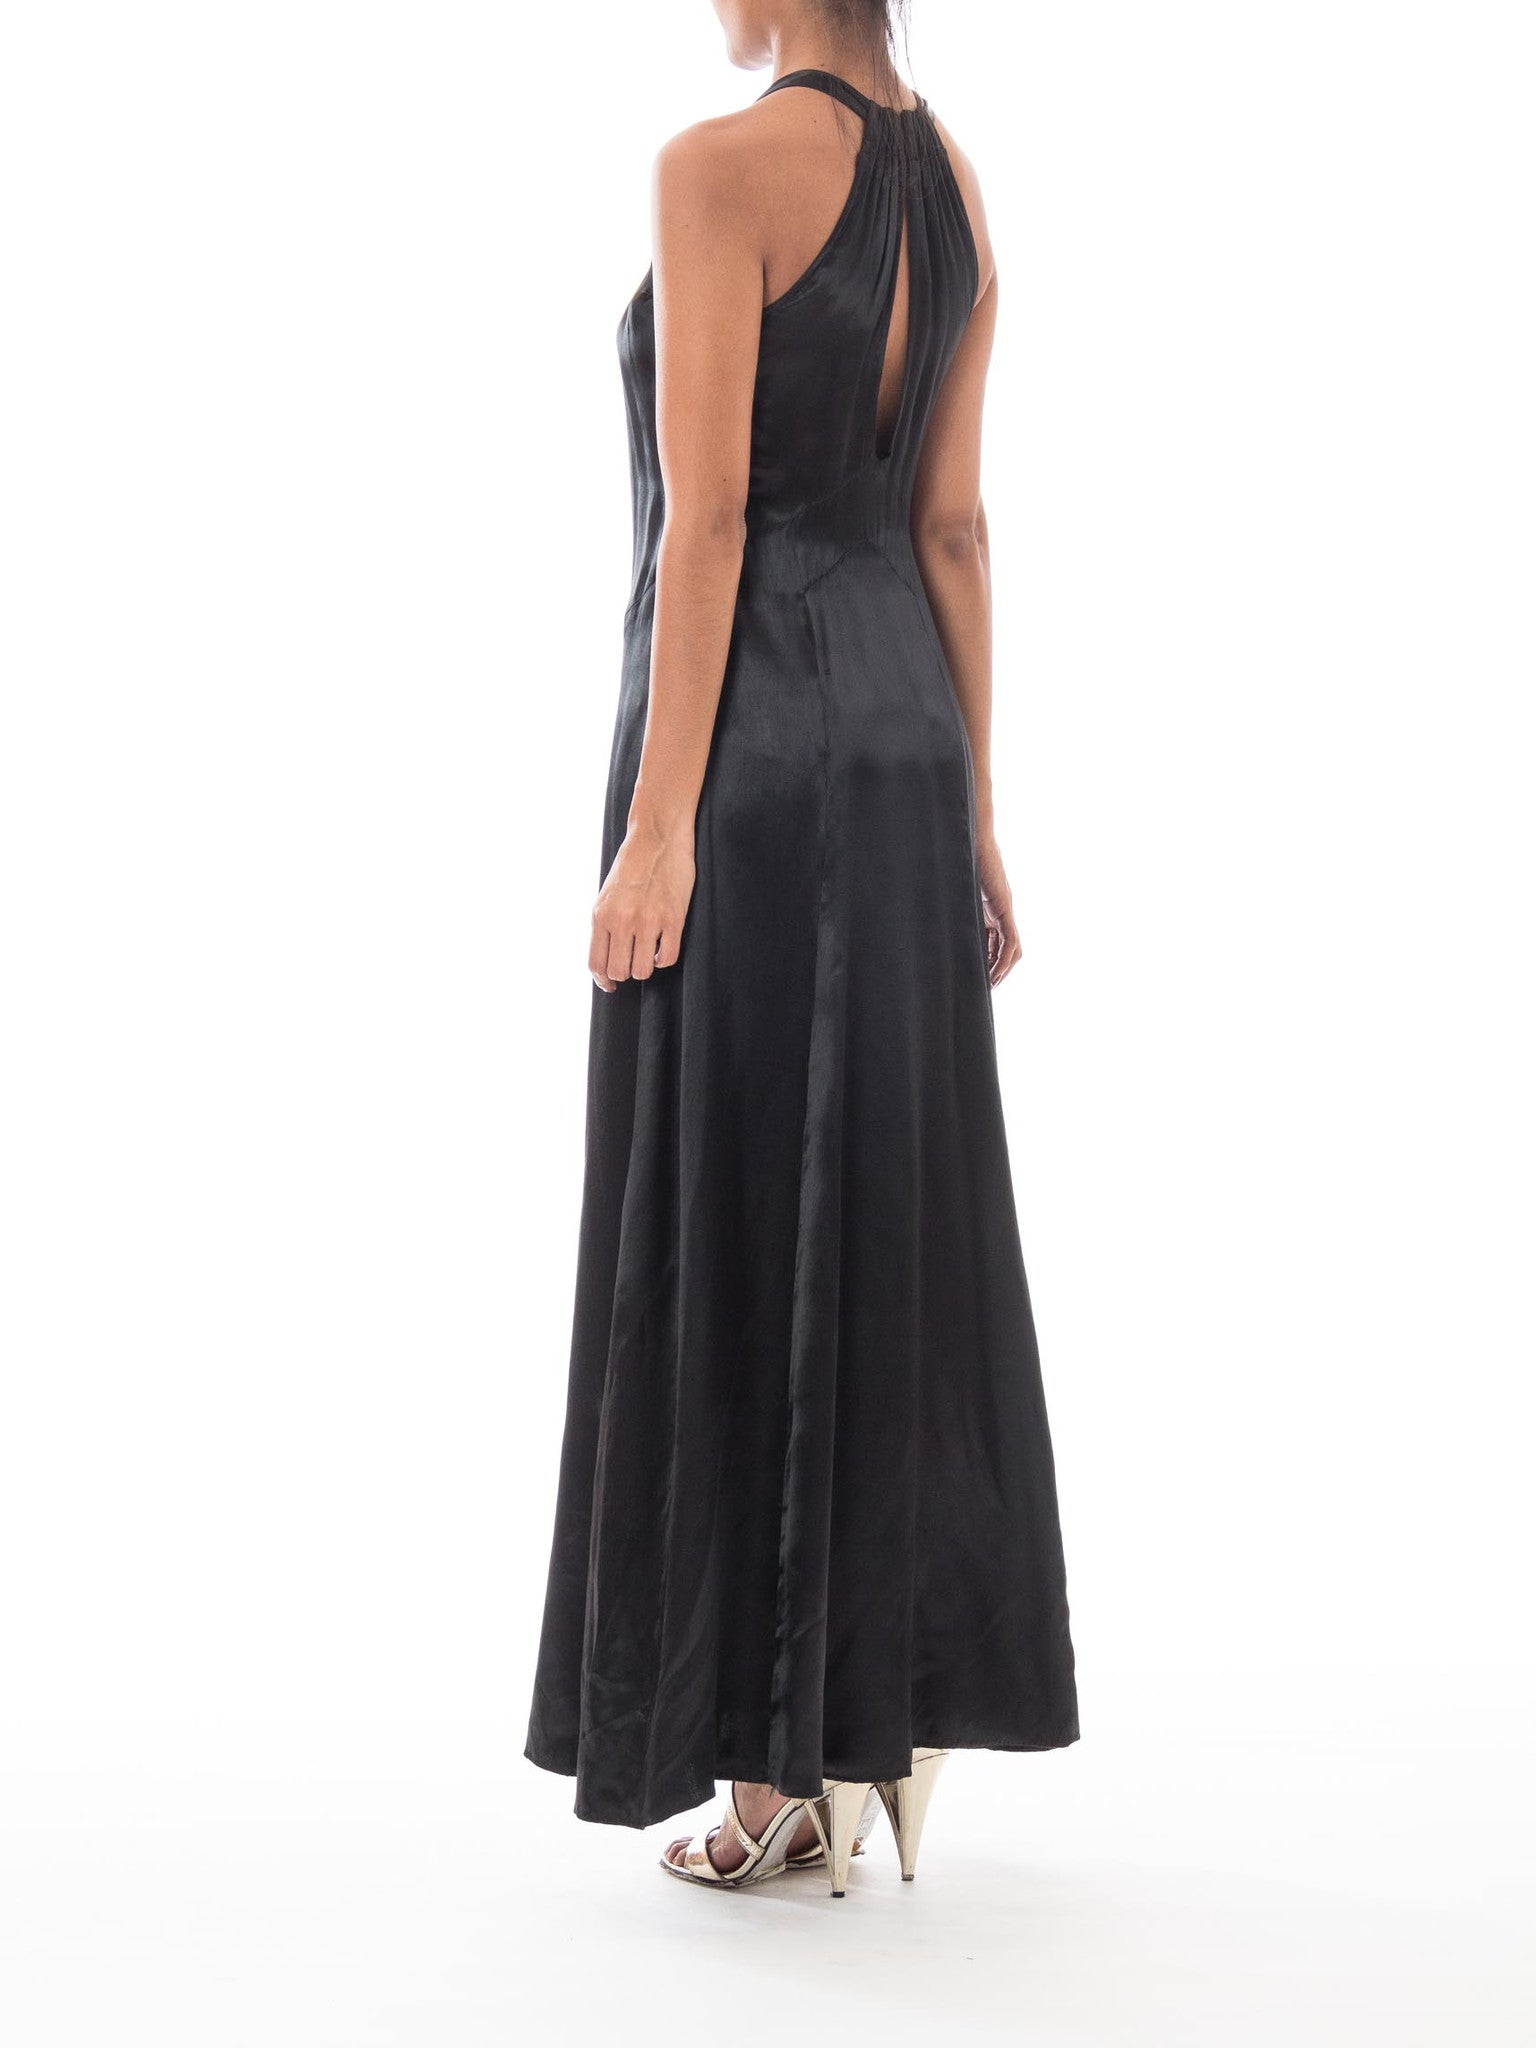 1930S Black Silk Satin Halter Bow Neck Gown